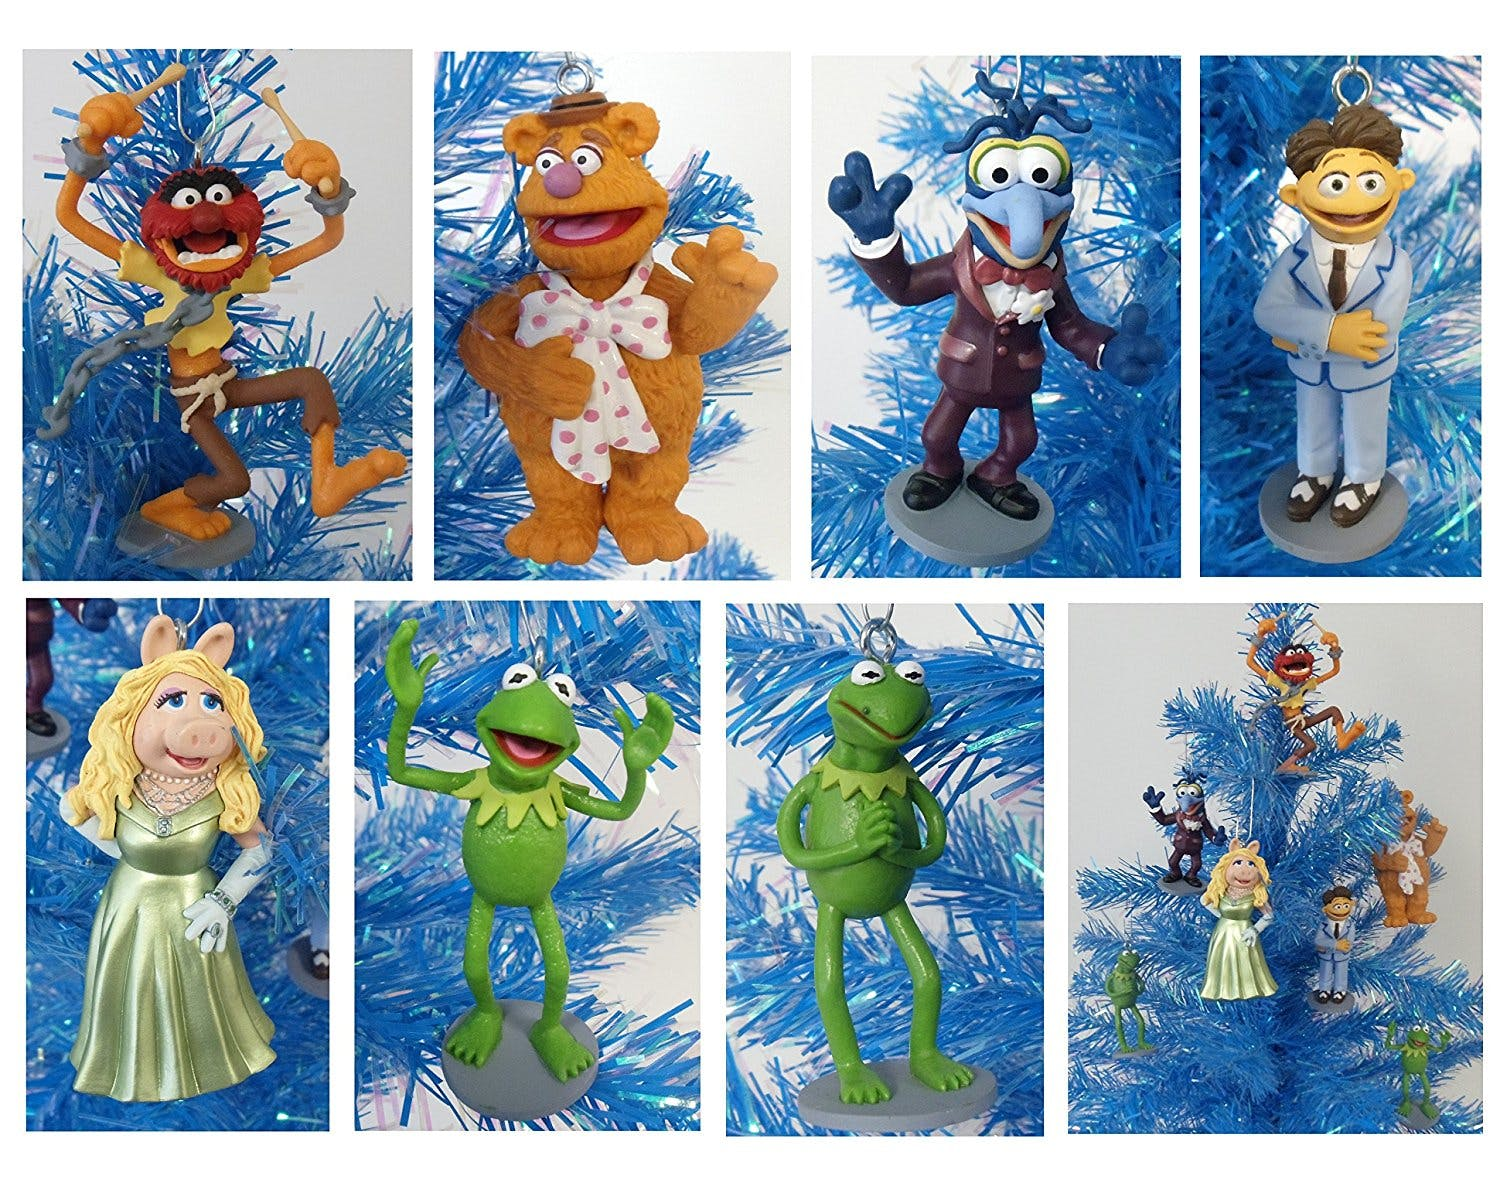 Muppets Christmas tree decorations